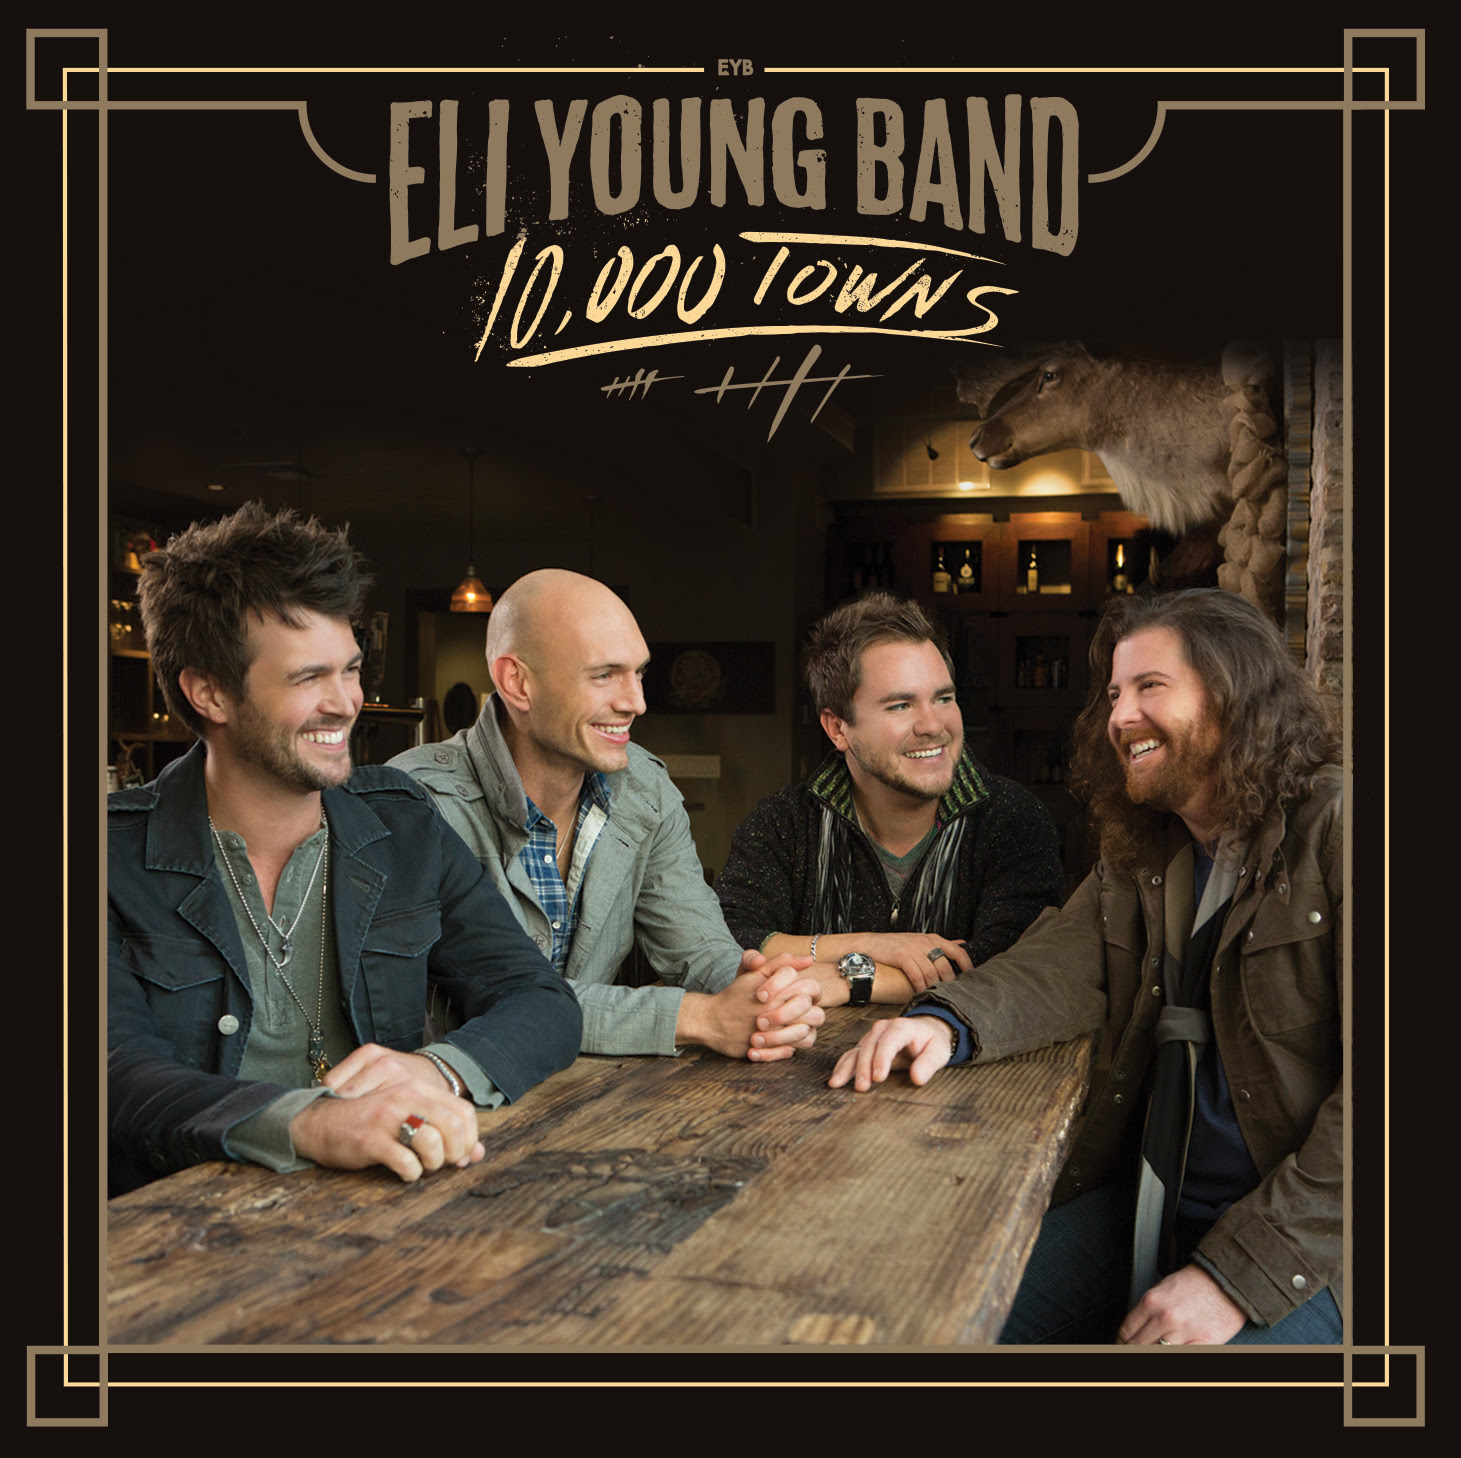 Album Review: Eli Young Band - 10,000 Towns